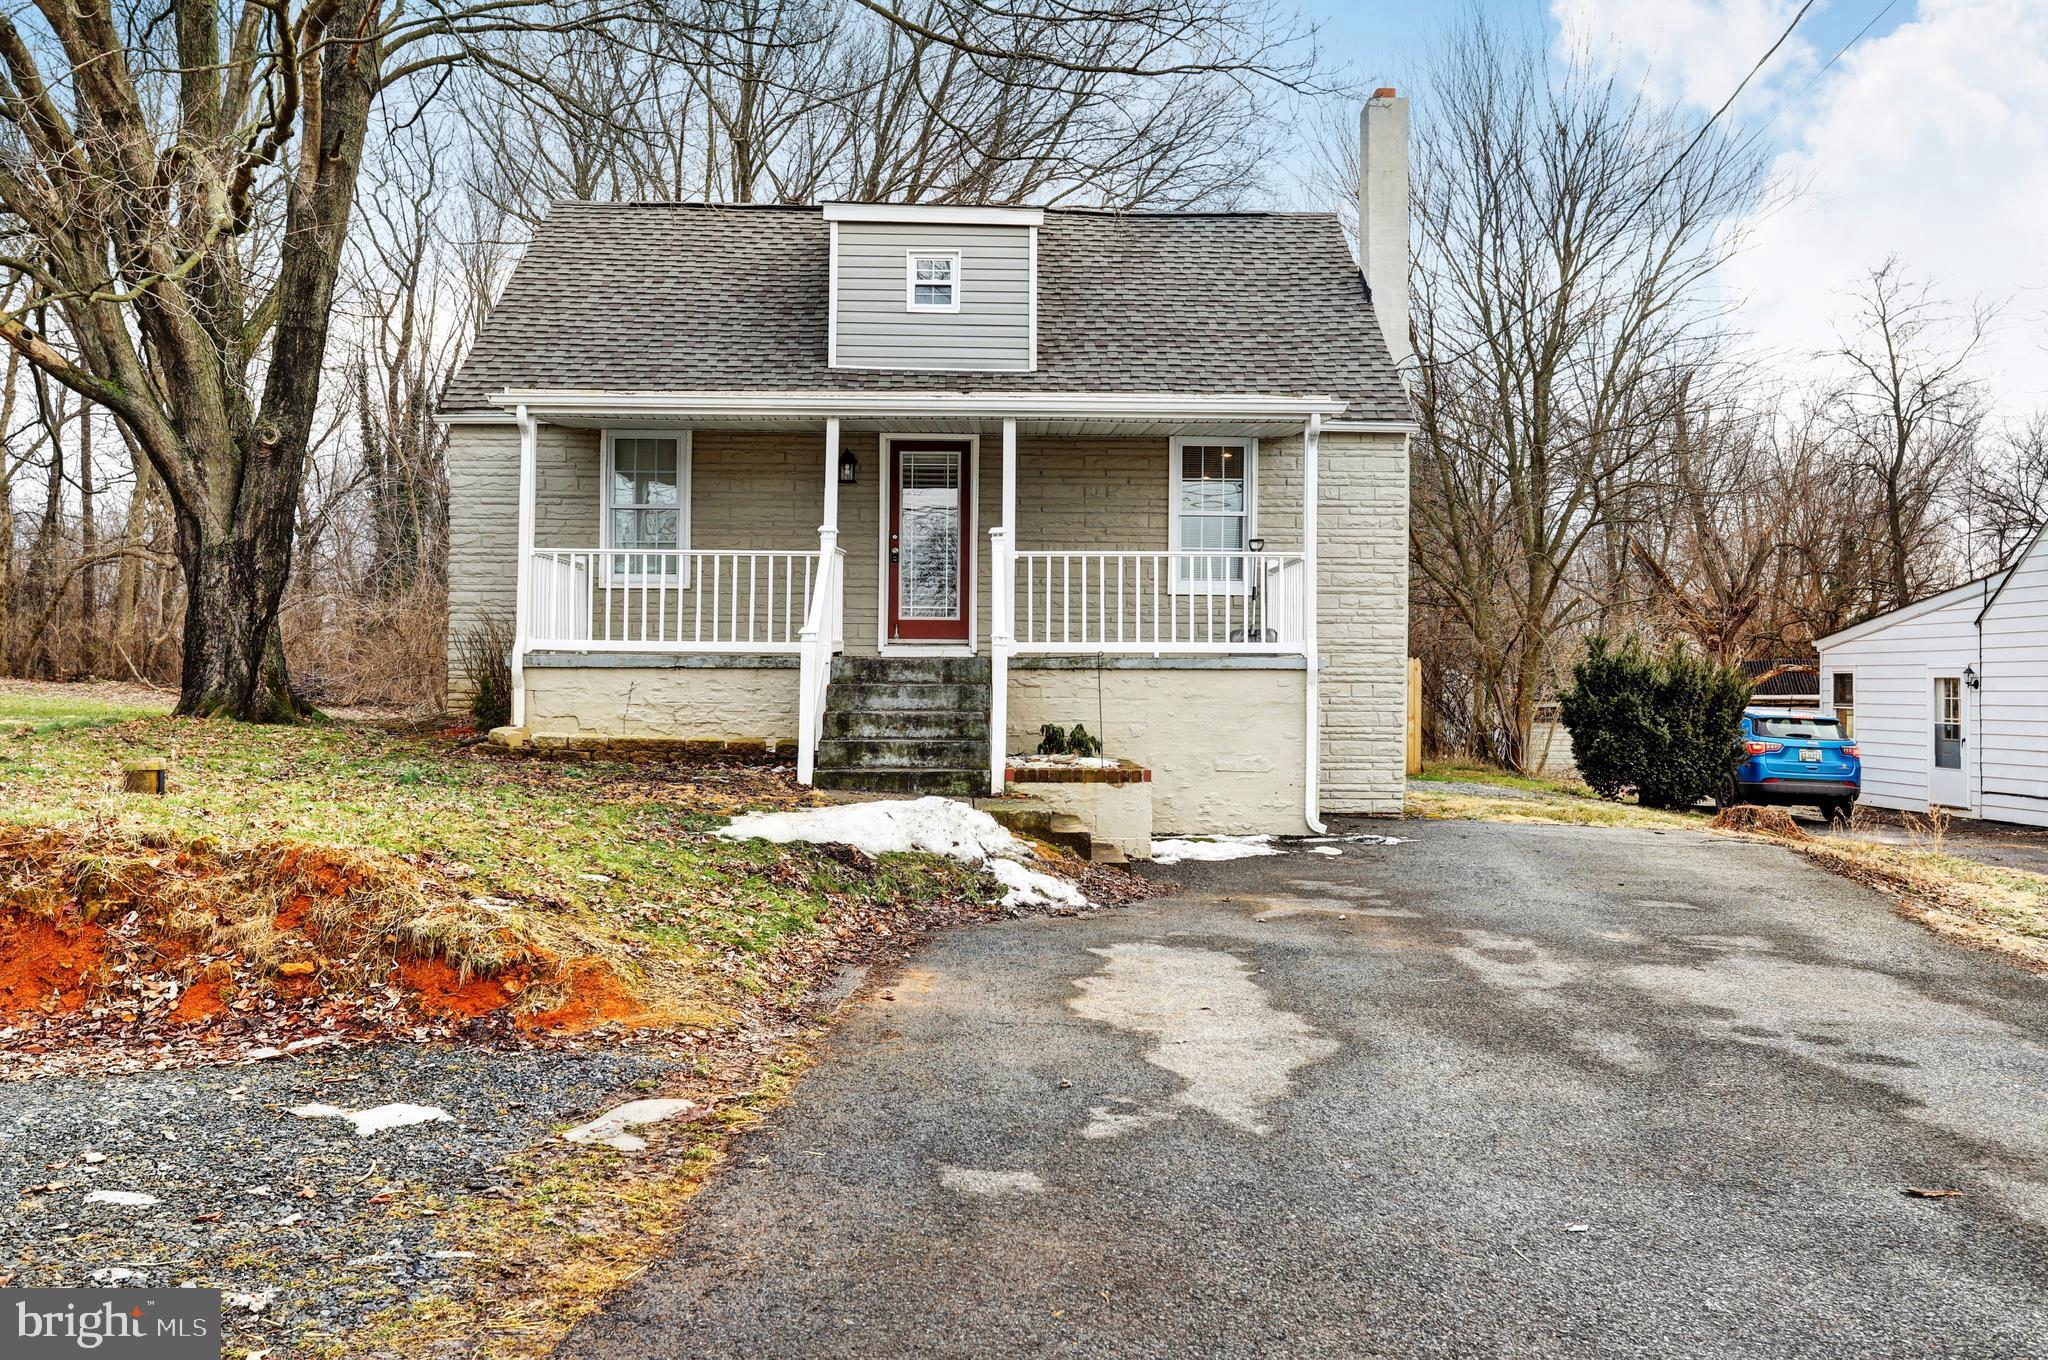 14355 NATIONAL PIKE, CLEAR SPRING, MD 21722